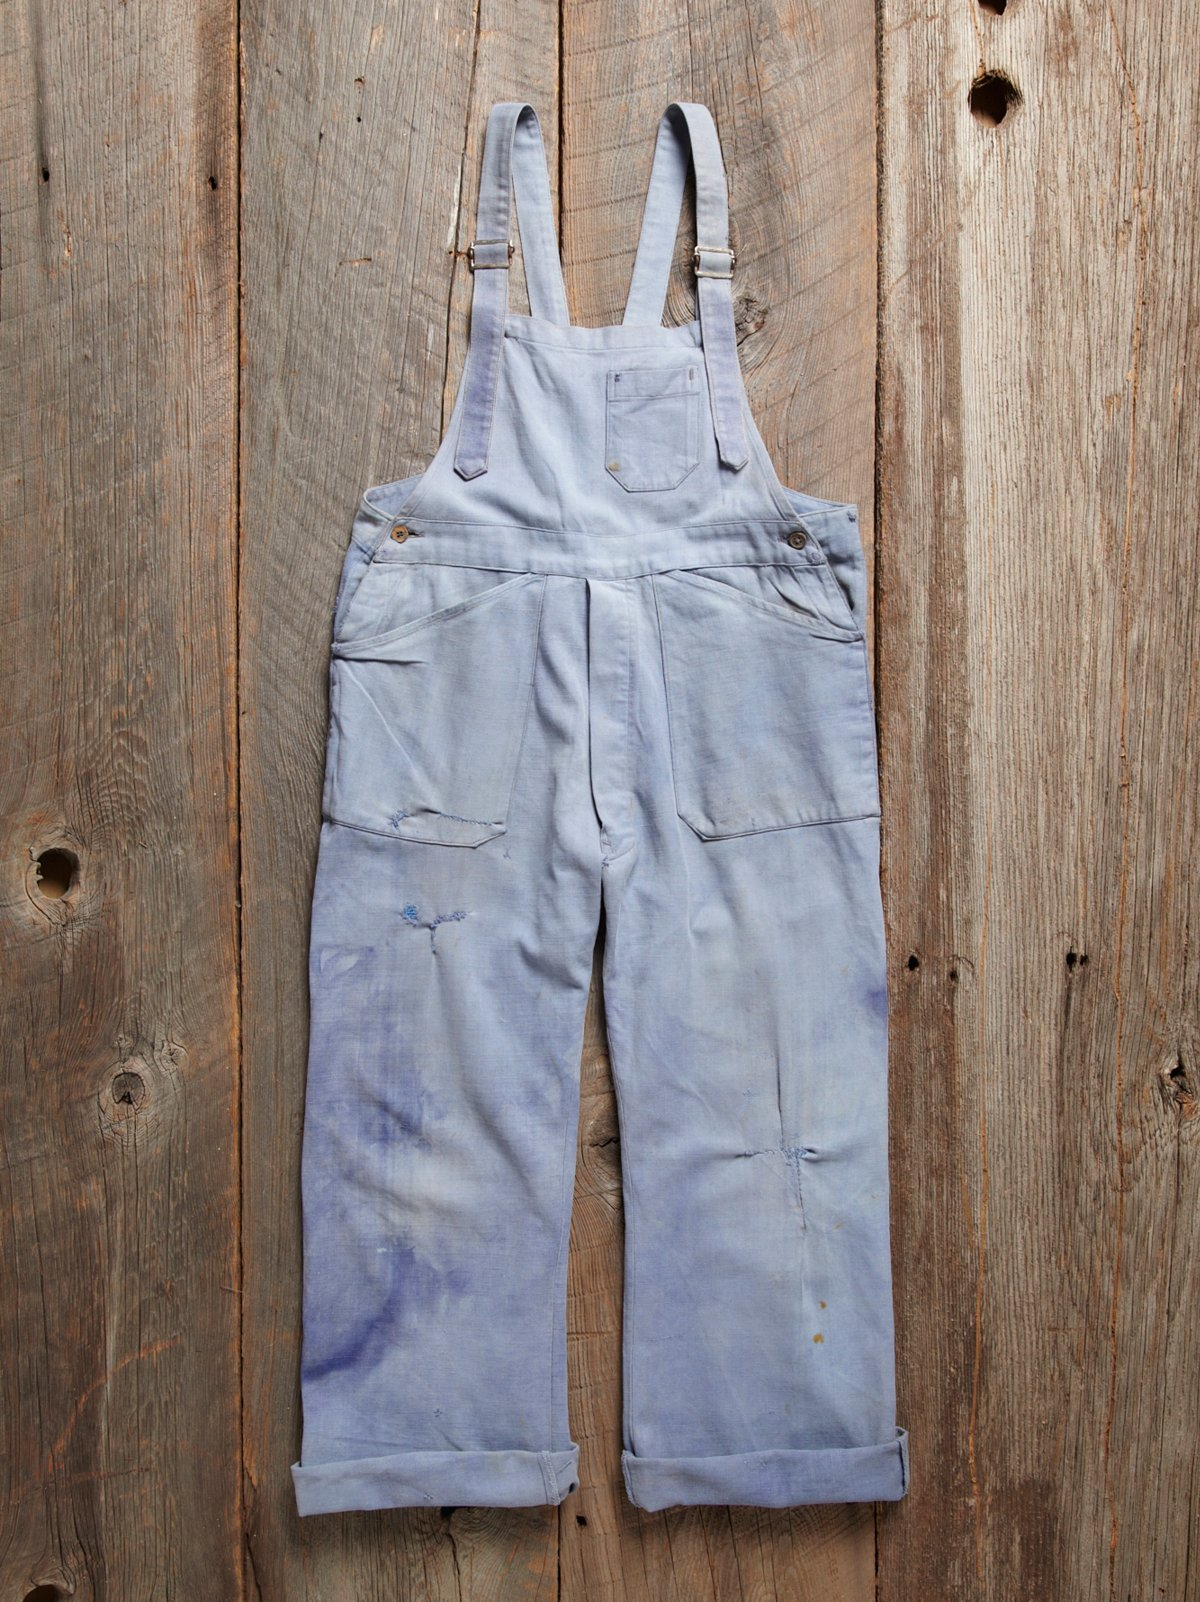 Vintage French Work Overall